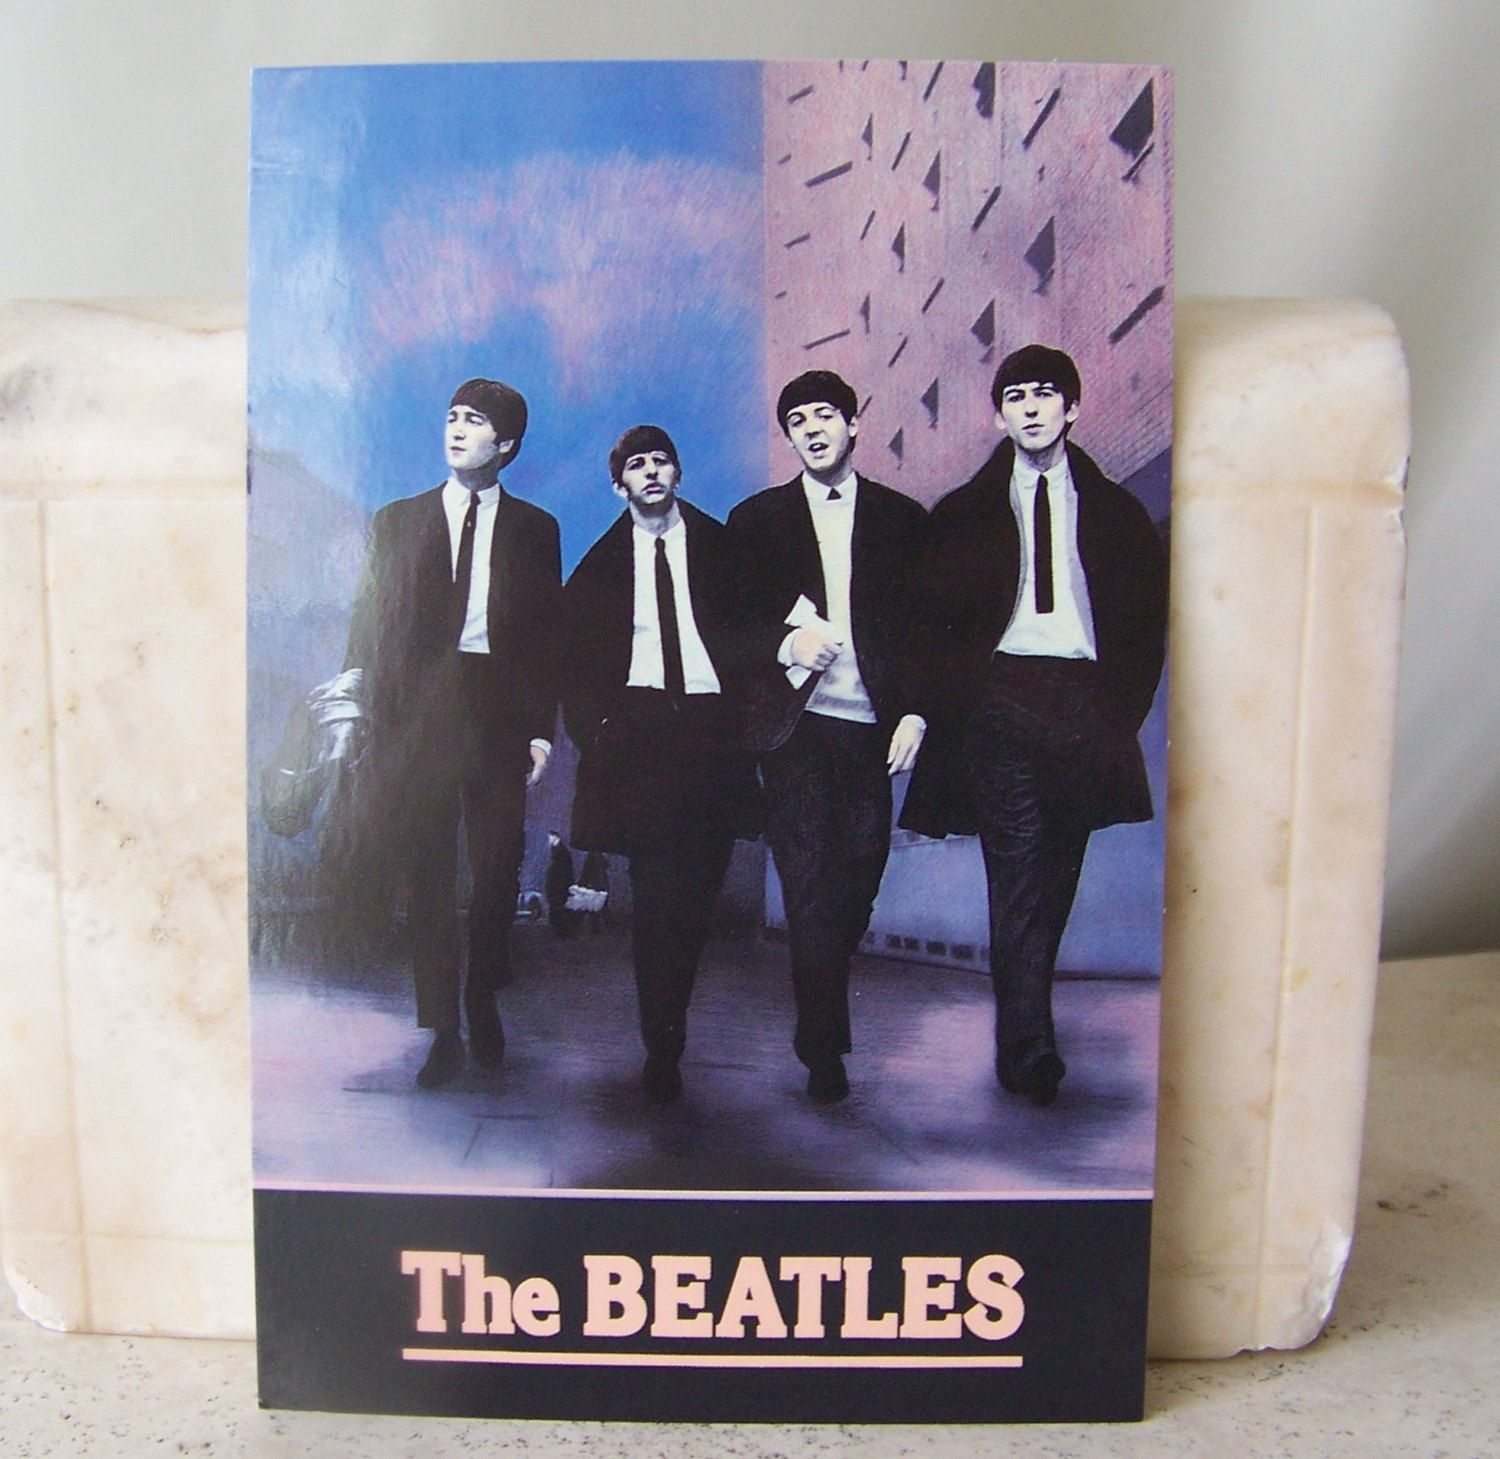 Vintage Beatles Postcard Fab Four Rock Group Beatles Photo Postcard Unused John Paul George Ringo by cynthiasattic on Etsy